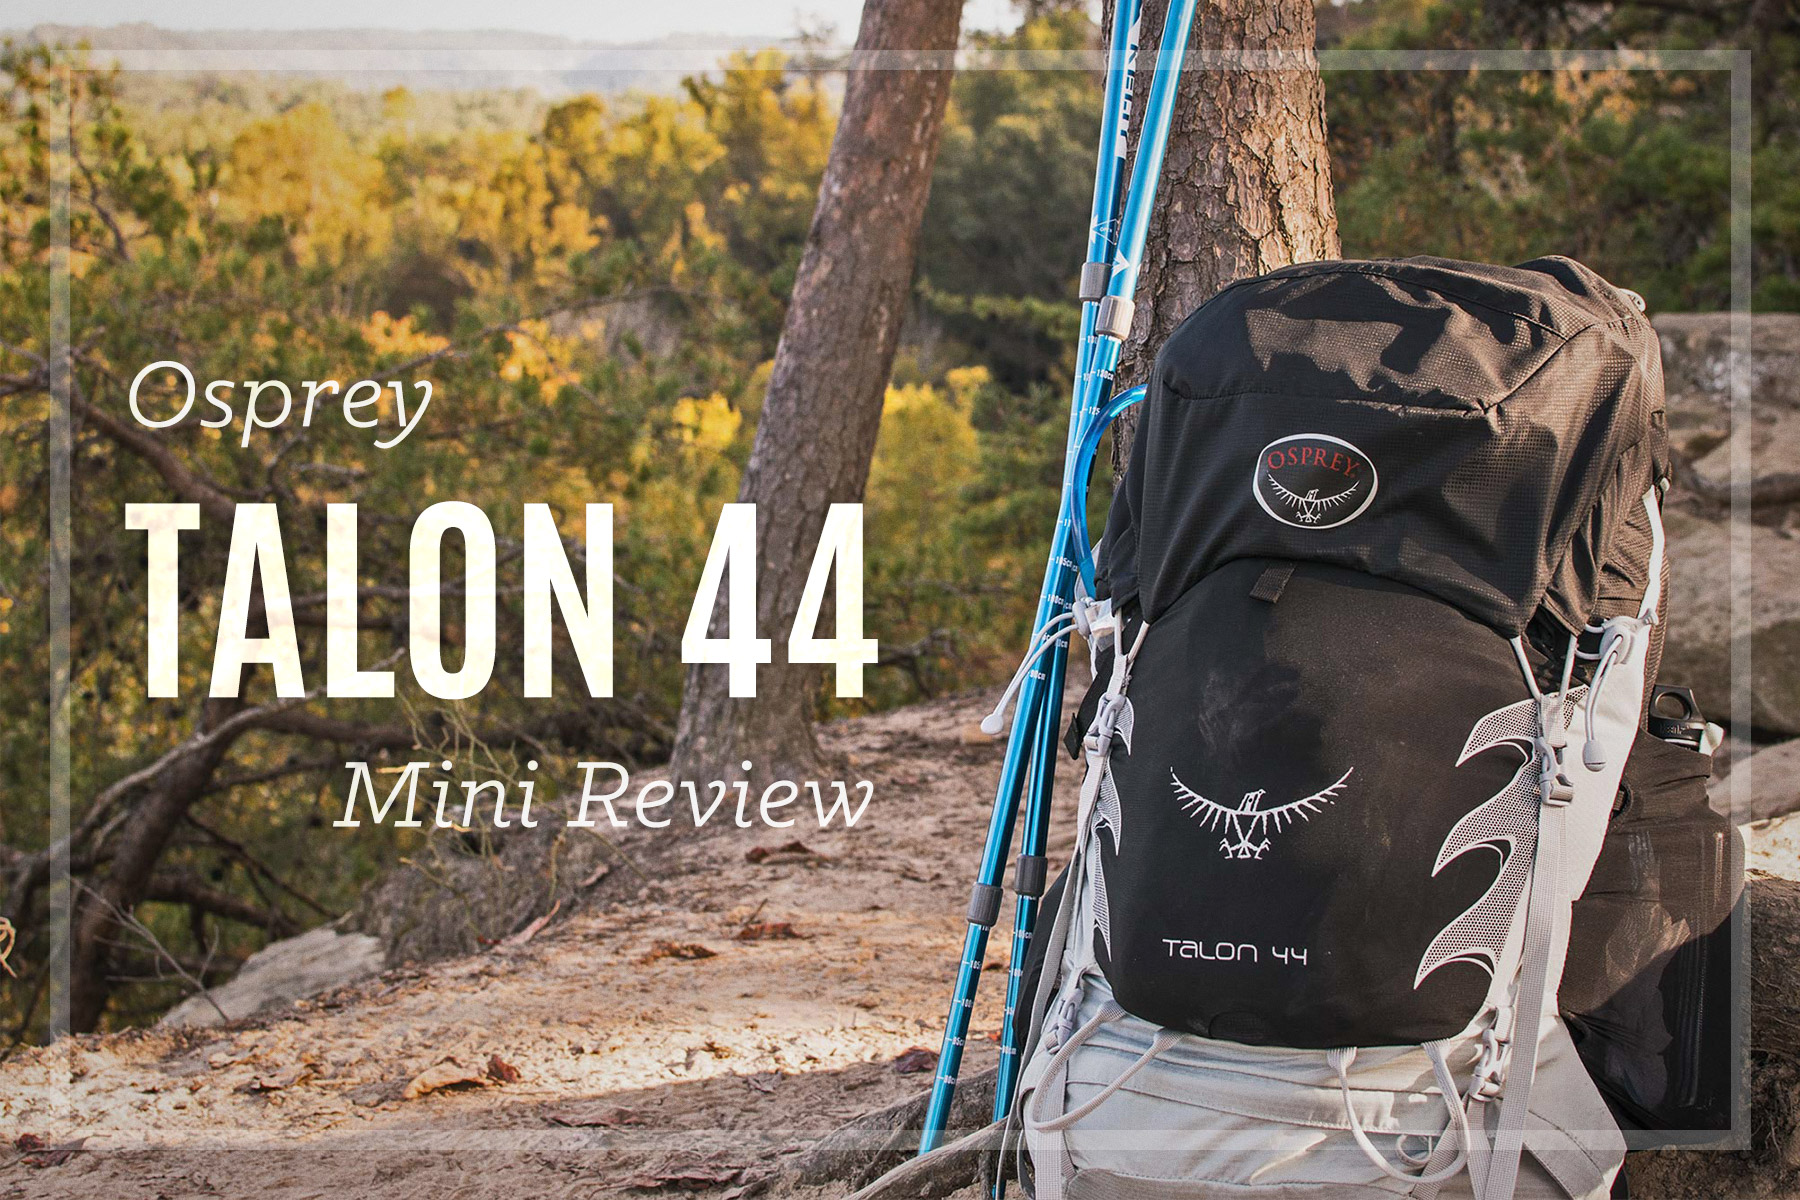 Osprey Talon 44 Review